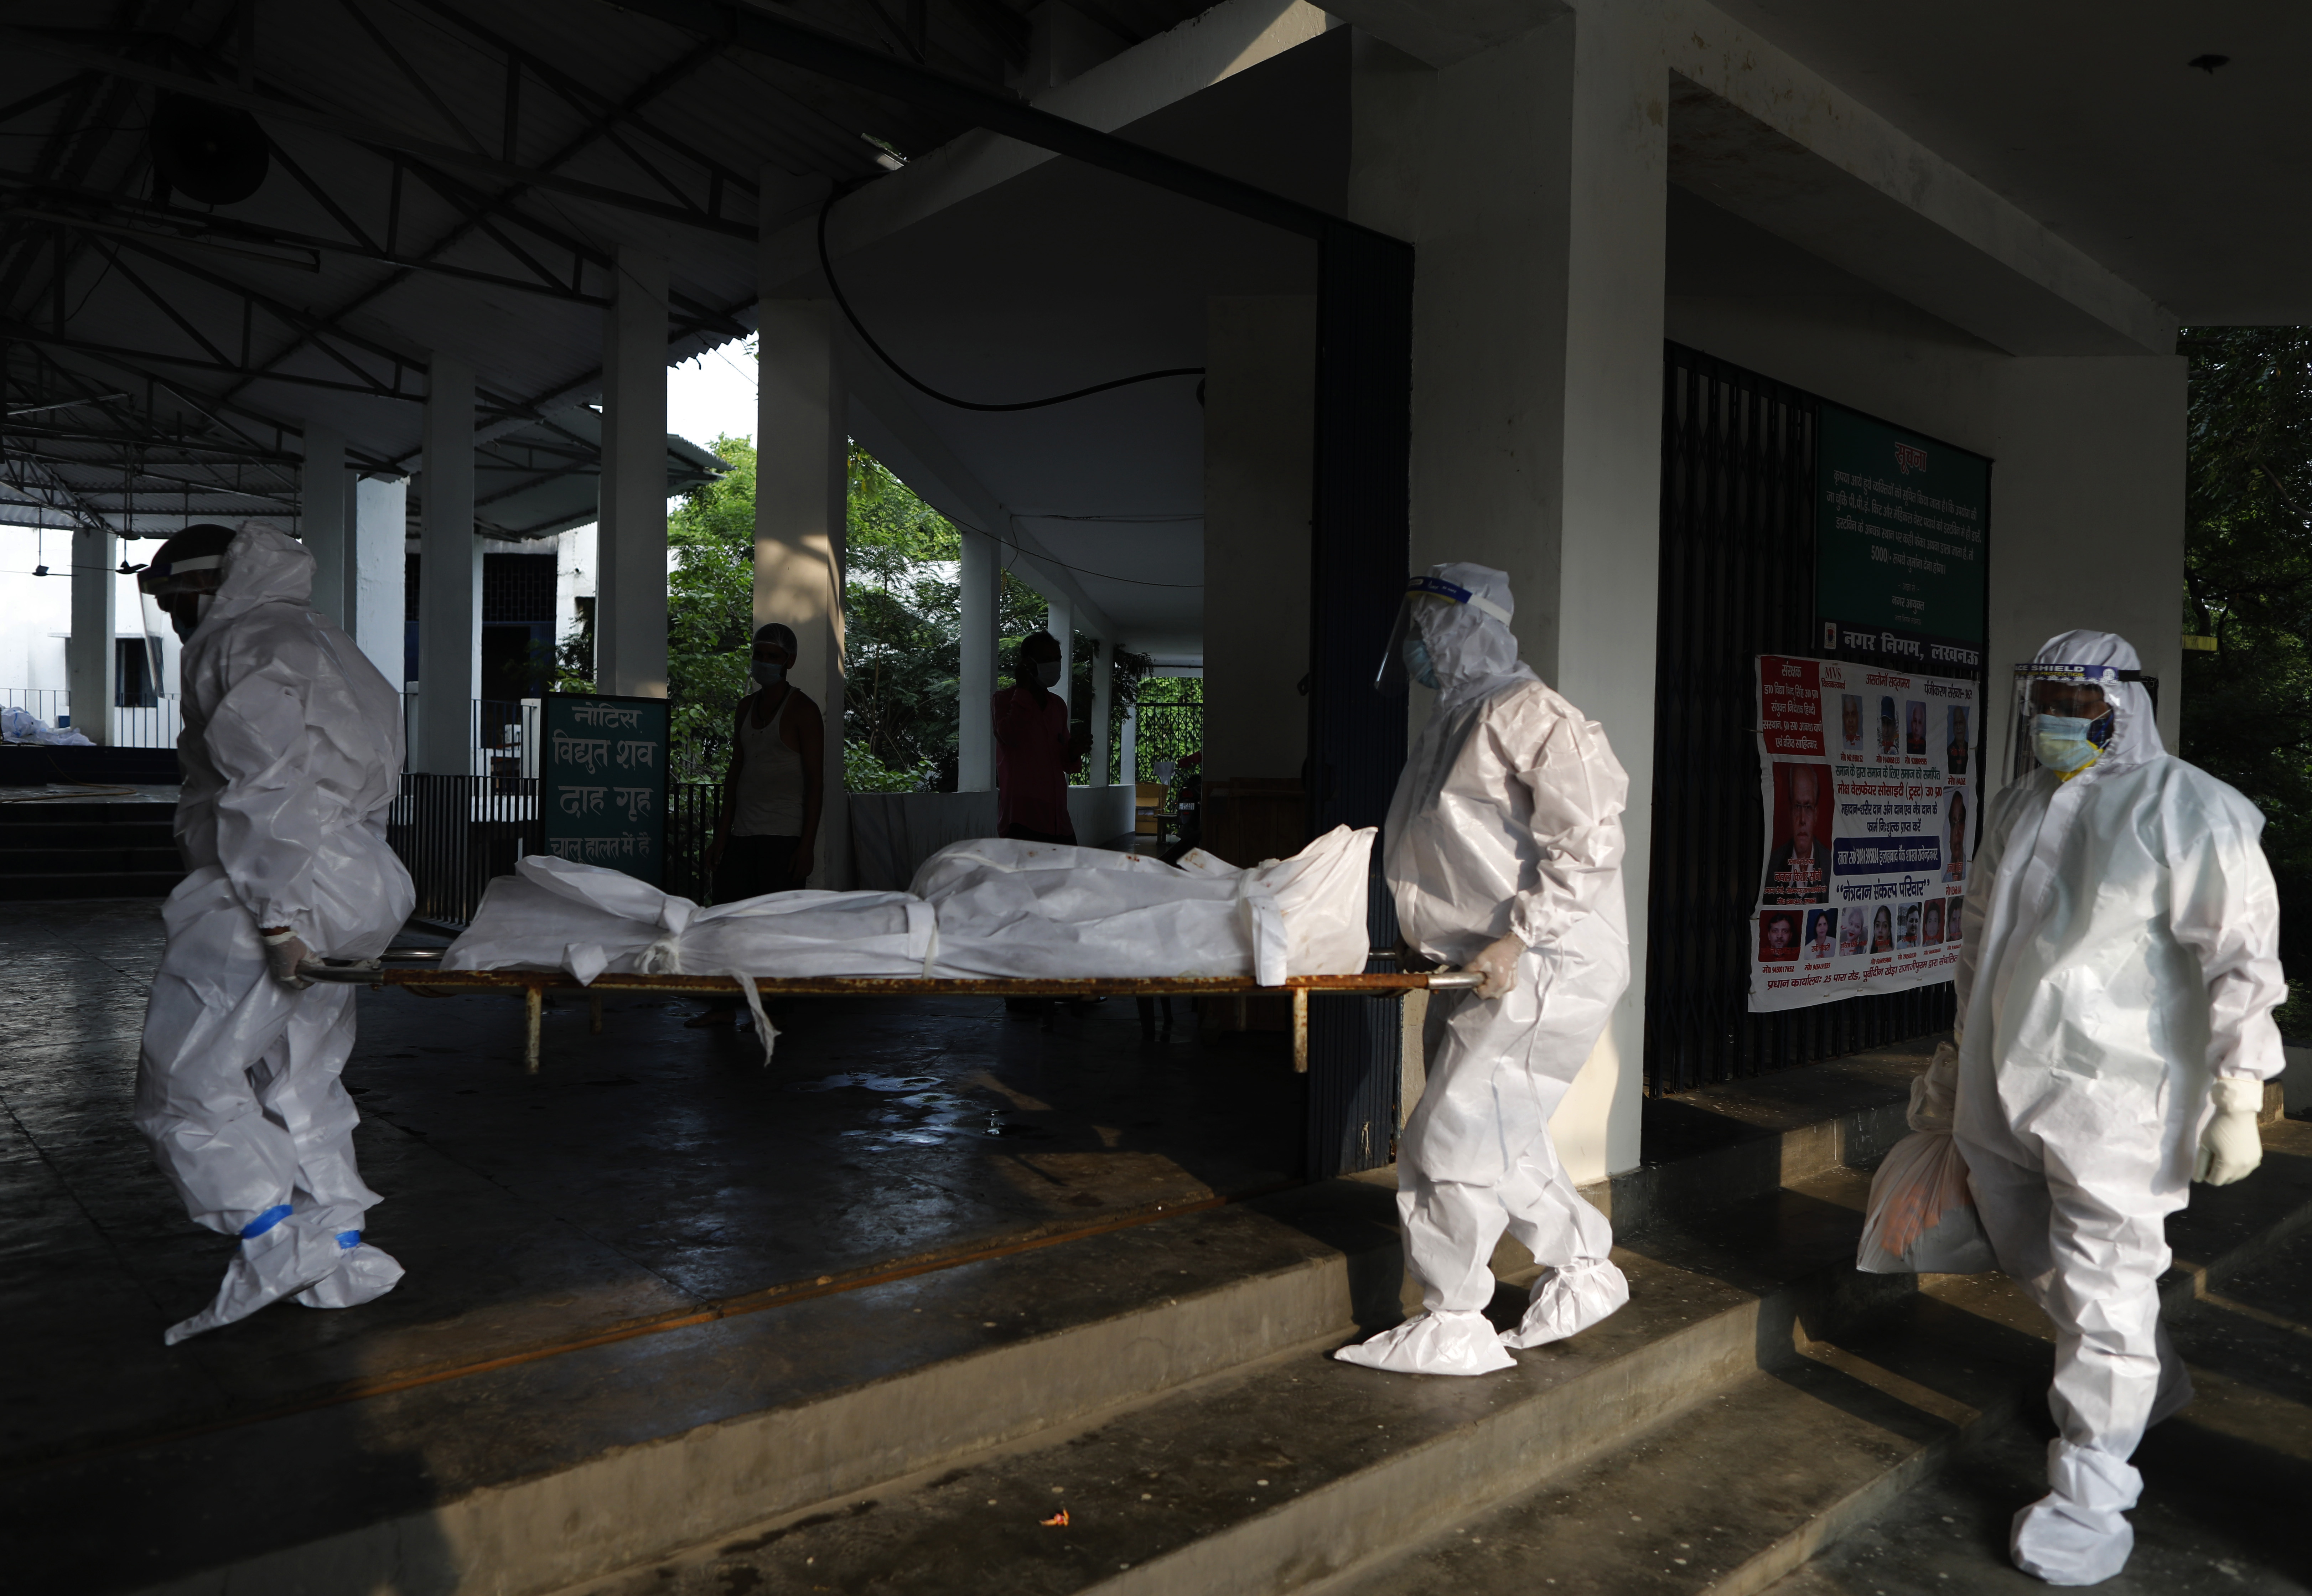 Health workers wearing personnel protection equipment carry the body of a COVID-19 victim for cremation in Lucknow, India, Saturday, Sept. 12, 2020. India's coronavirus cases are now the second-highest in the world and only behind the United States. (AP Photo/Rajesh Kumar Singh)